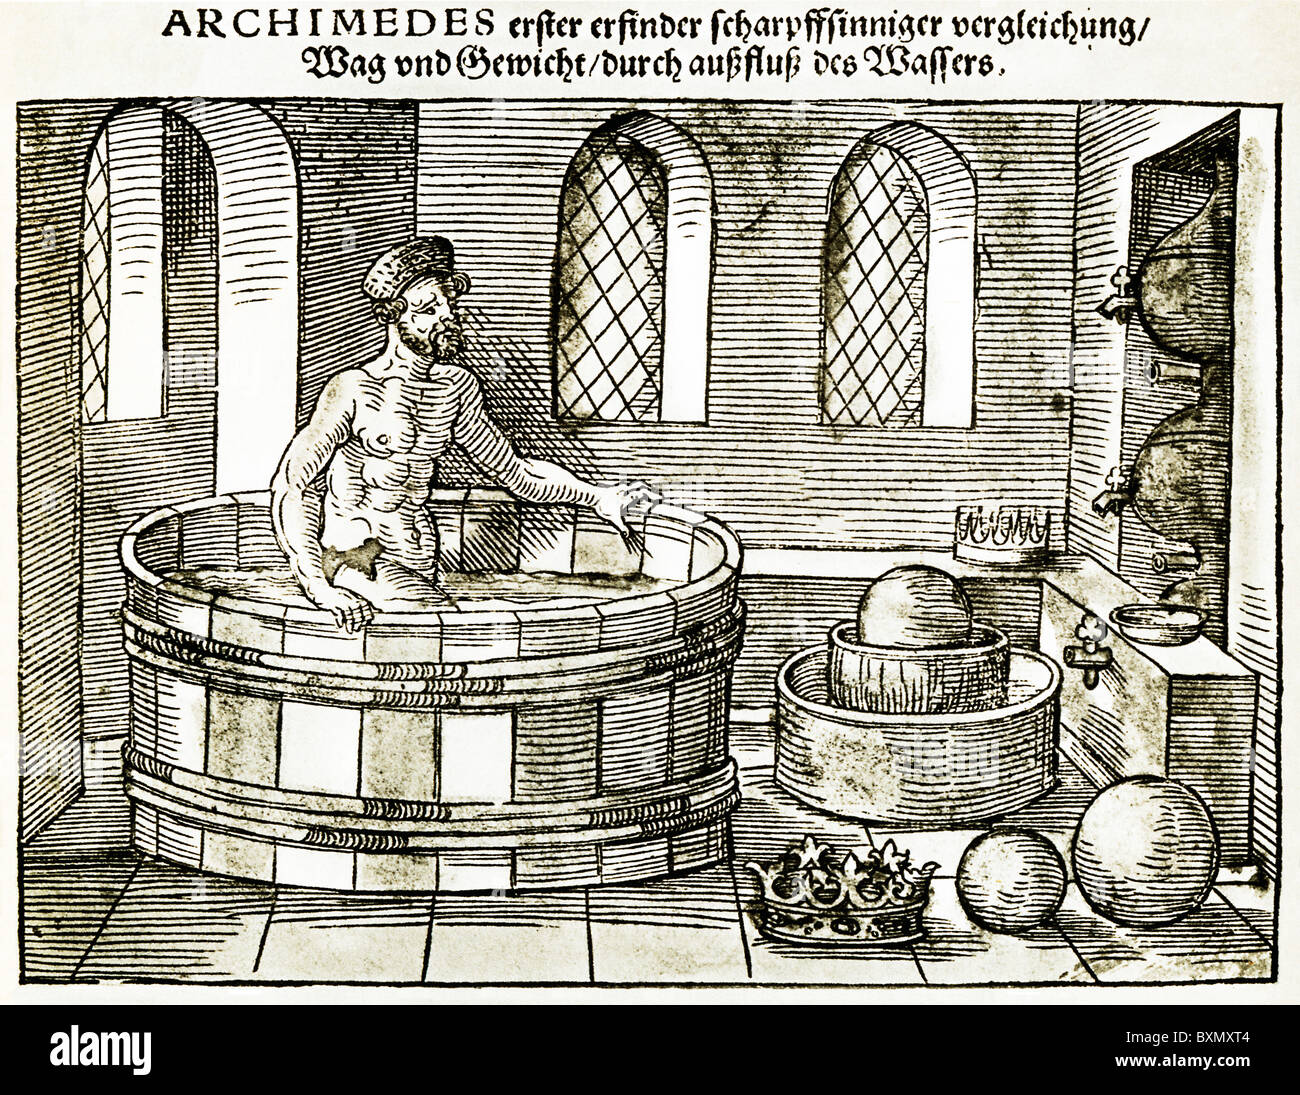 Archimedes, Eureka, in his bath as he works out the theory of displacement in this 16th Century German engraving - Stock Image